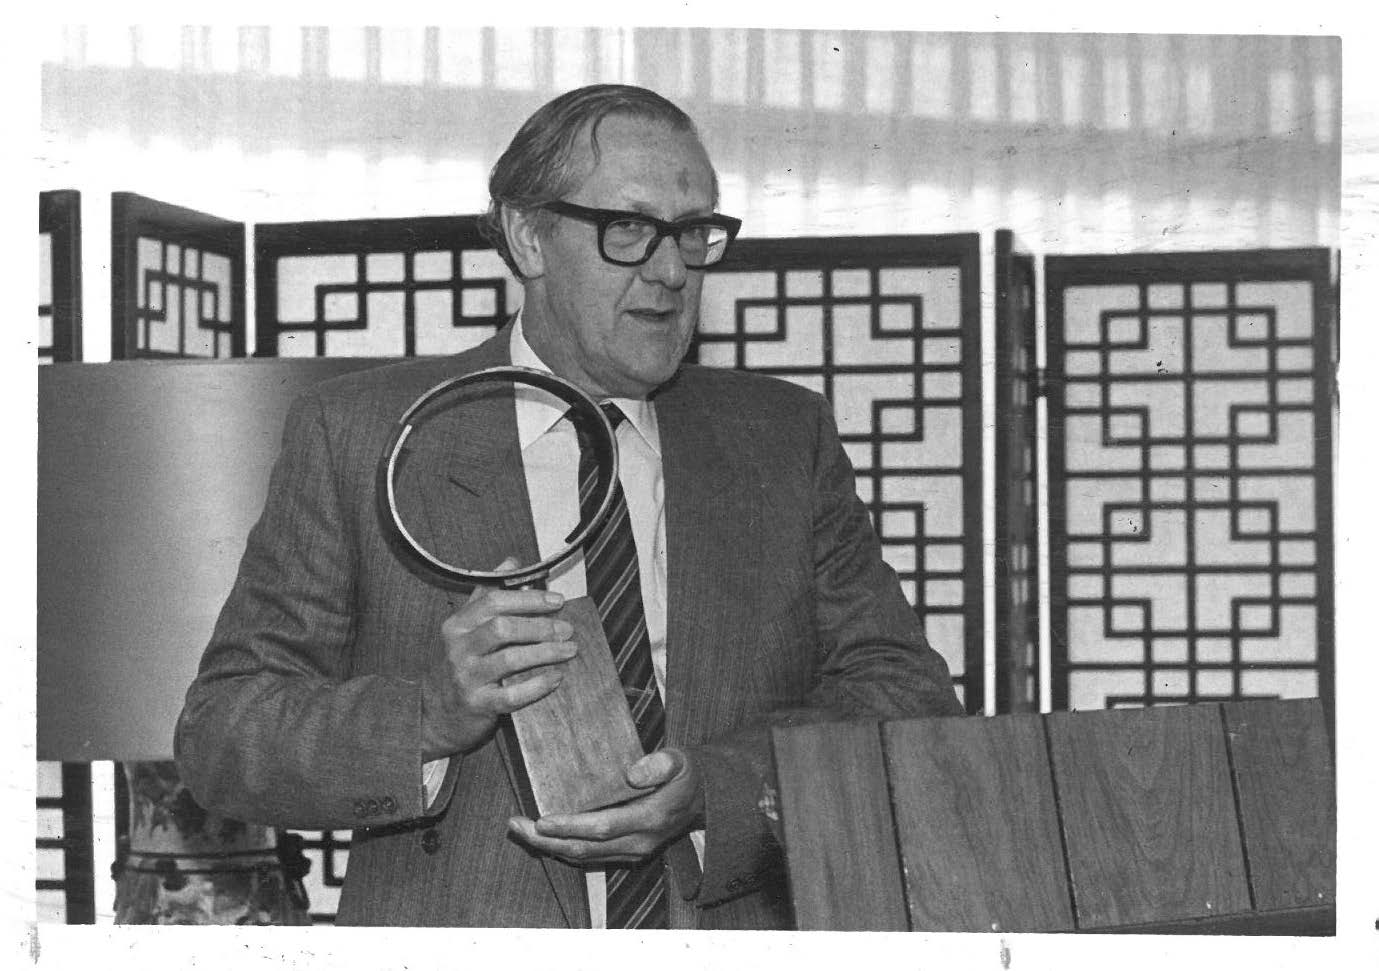 Brian Aldiss accepting the John W. Campbell Memorial Award for Helliconia Spring, Lawrence, KS, 1983.